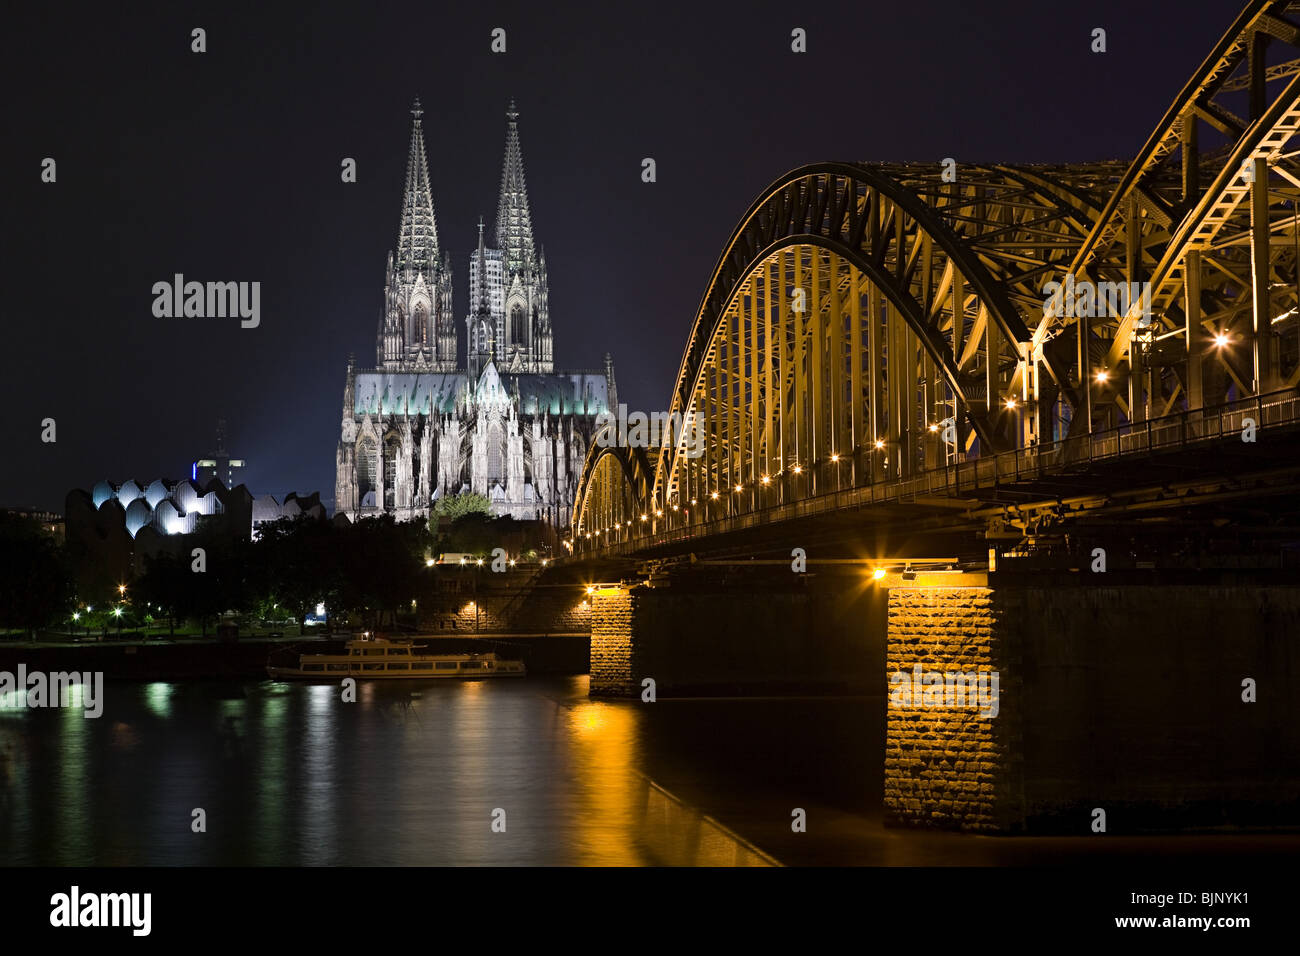 Bridge and cologne cathedral at night - Stock Image